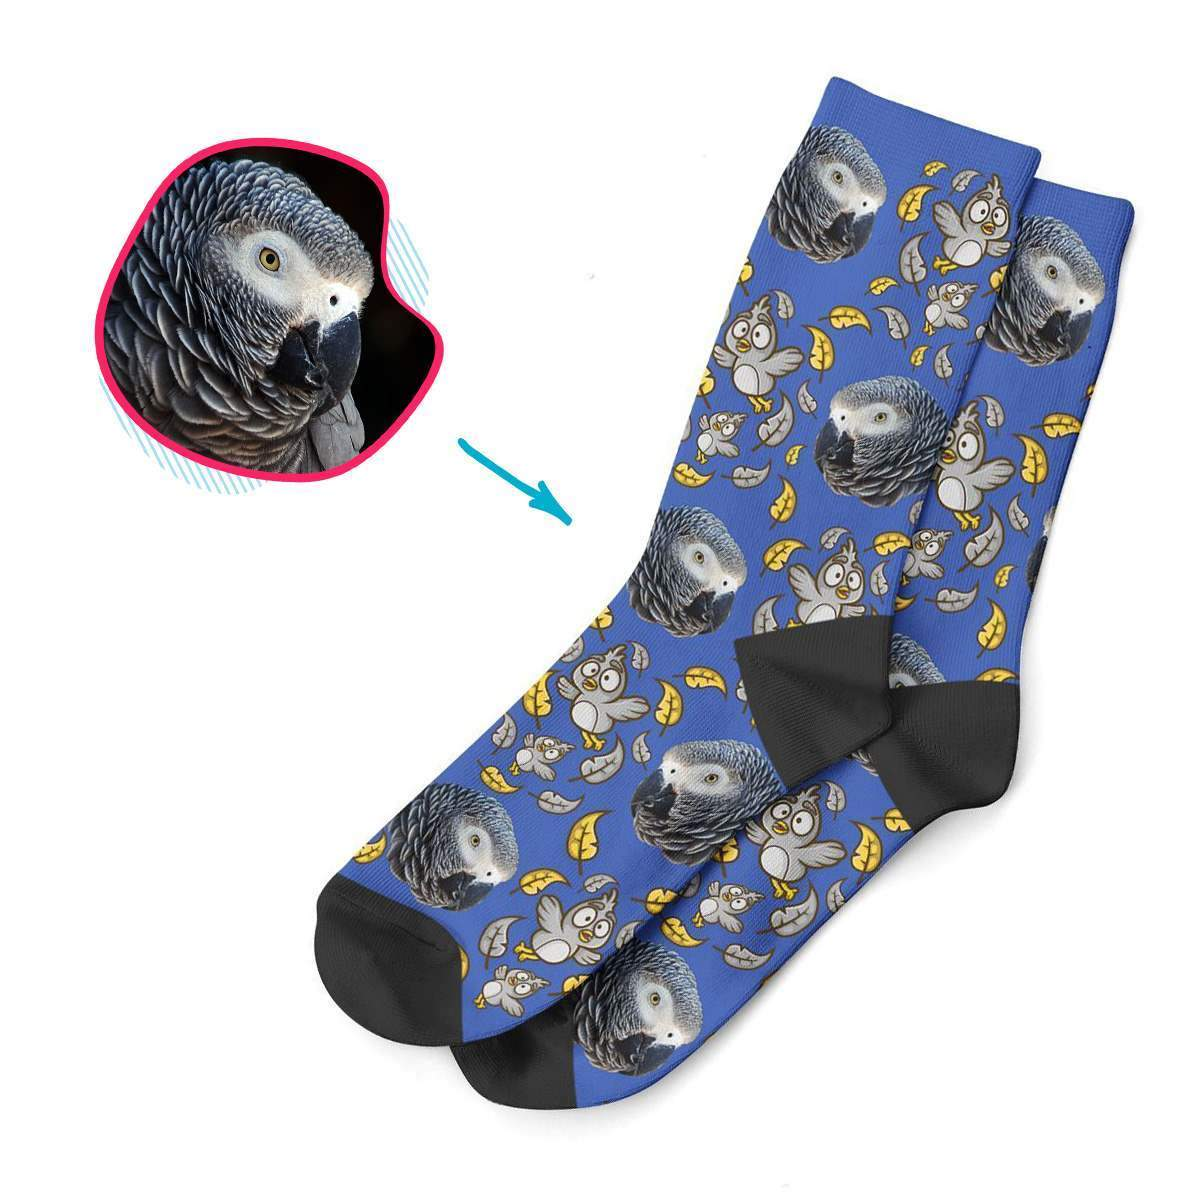 darkblue Bird socks personalized with photo of face printed on them